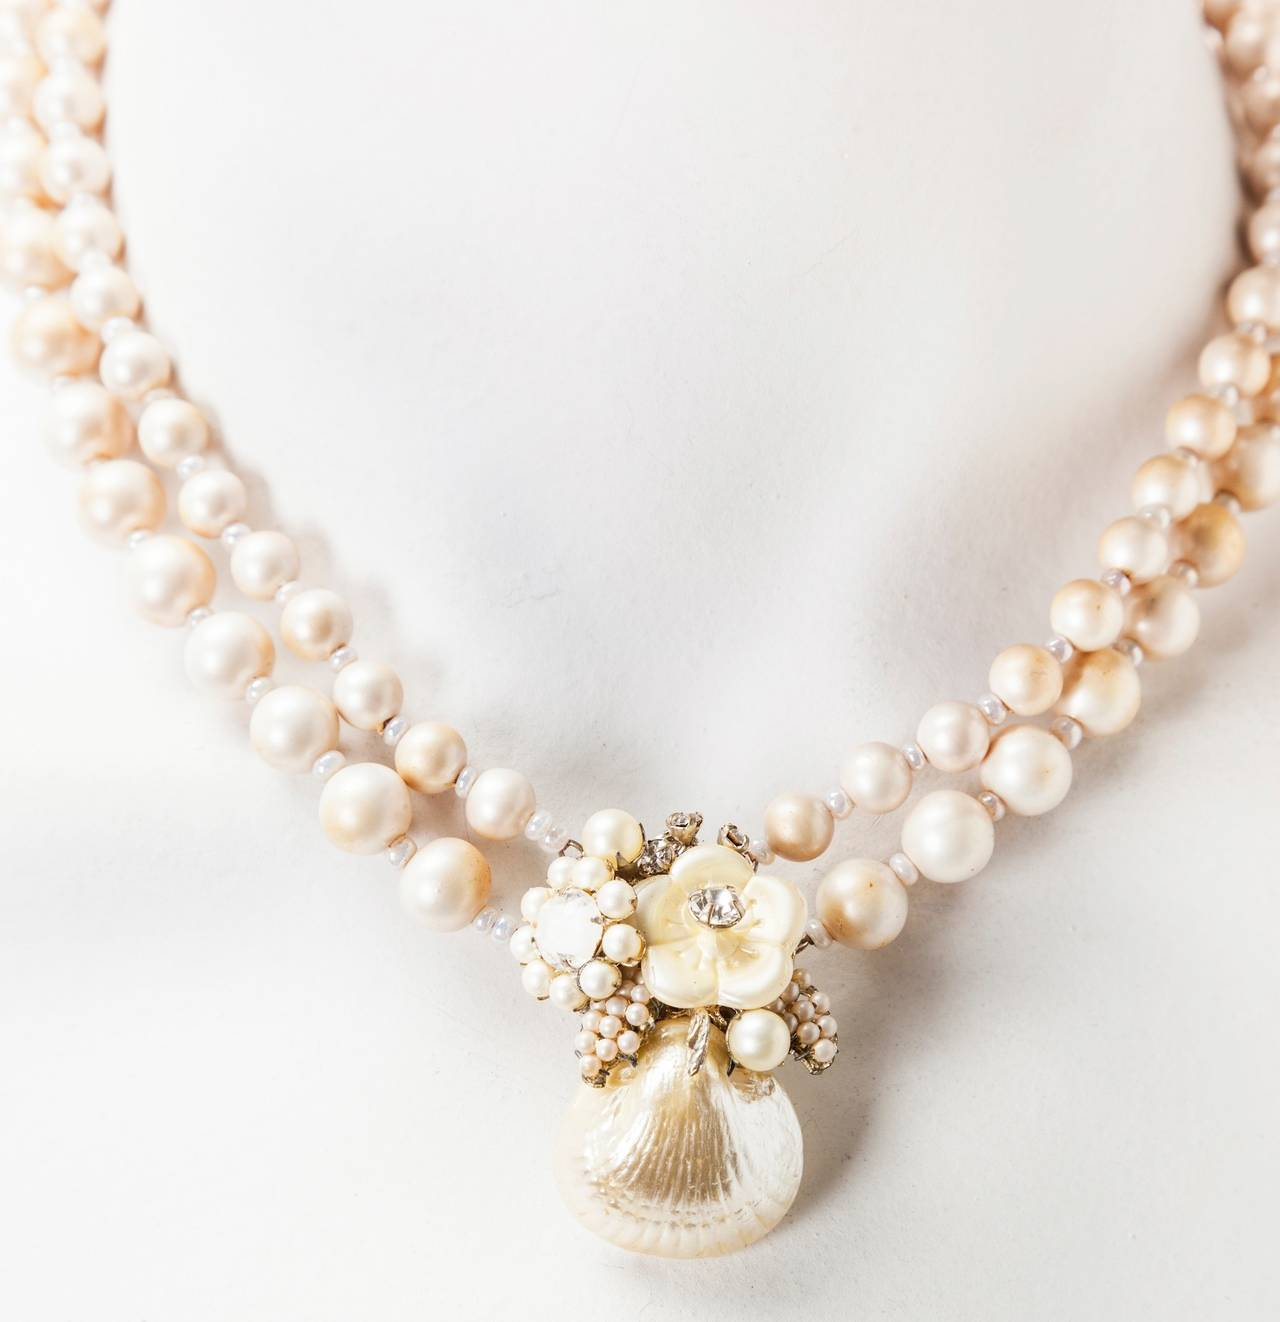 Miriam Haskell's signature freshwater pearl two strand necklace. The double strand faux pearl beads are separated with white pate de verre spacers. A center clasp of a nacre laquered glass scallop shell is further decorated with floral motifs and